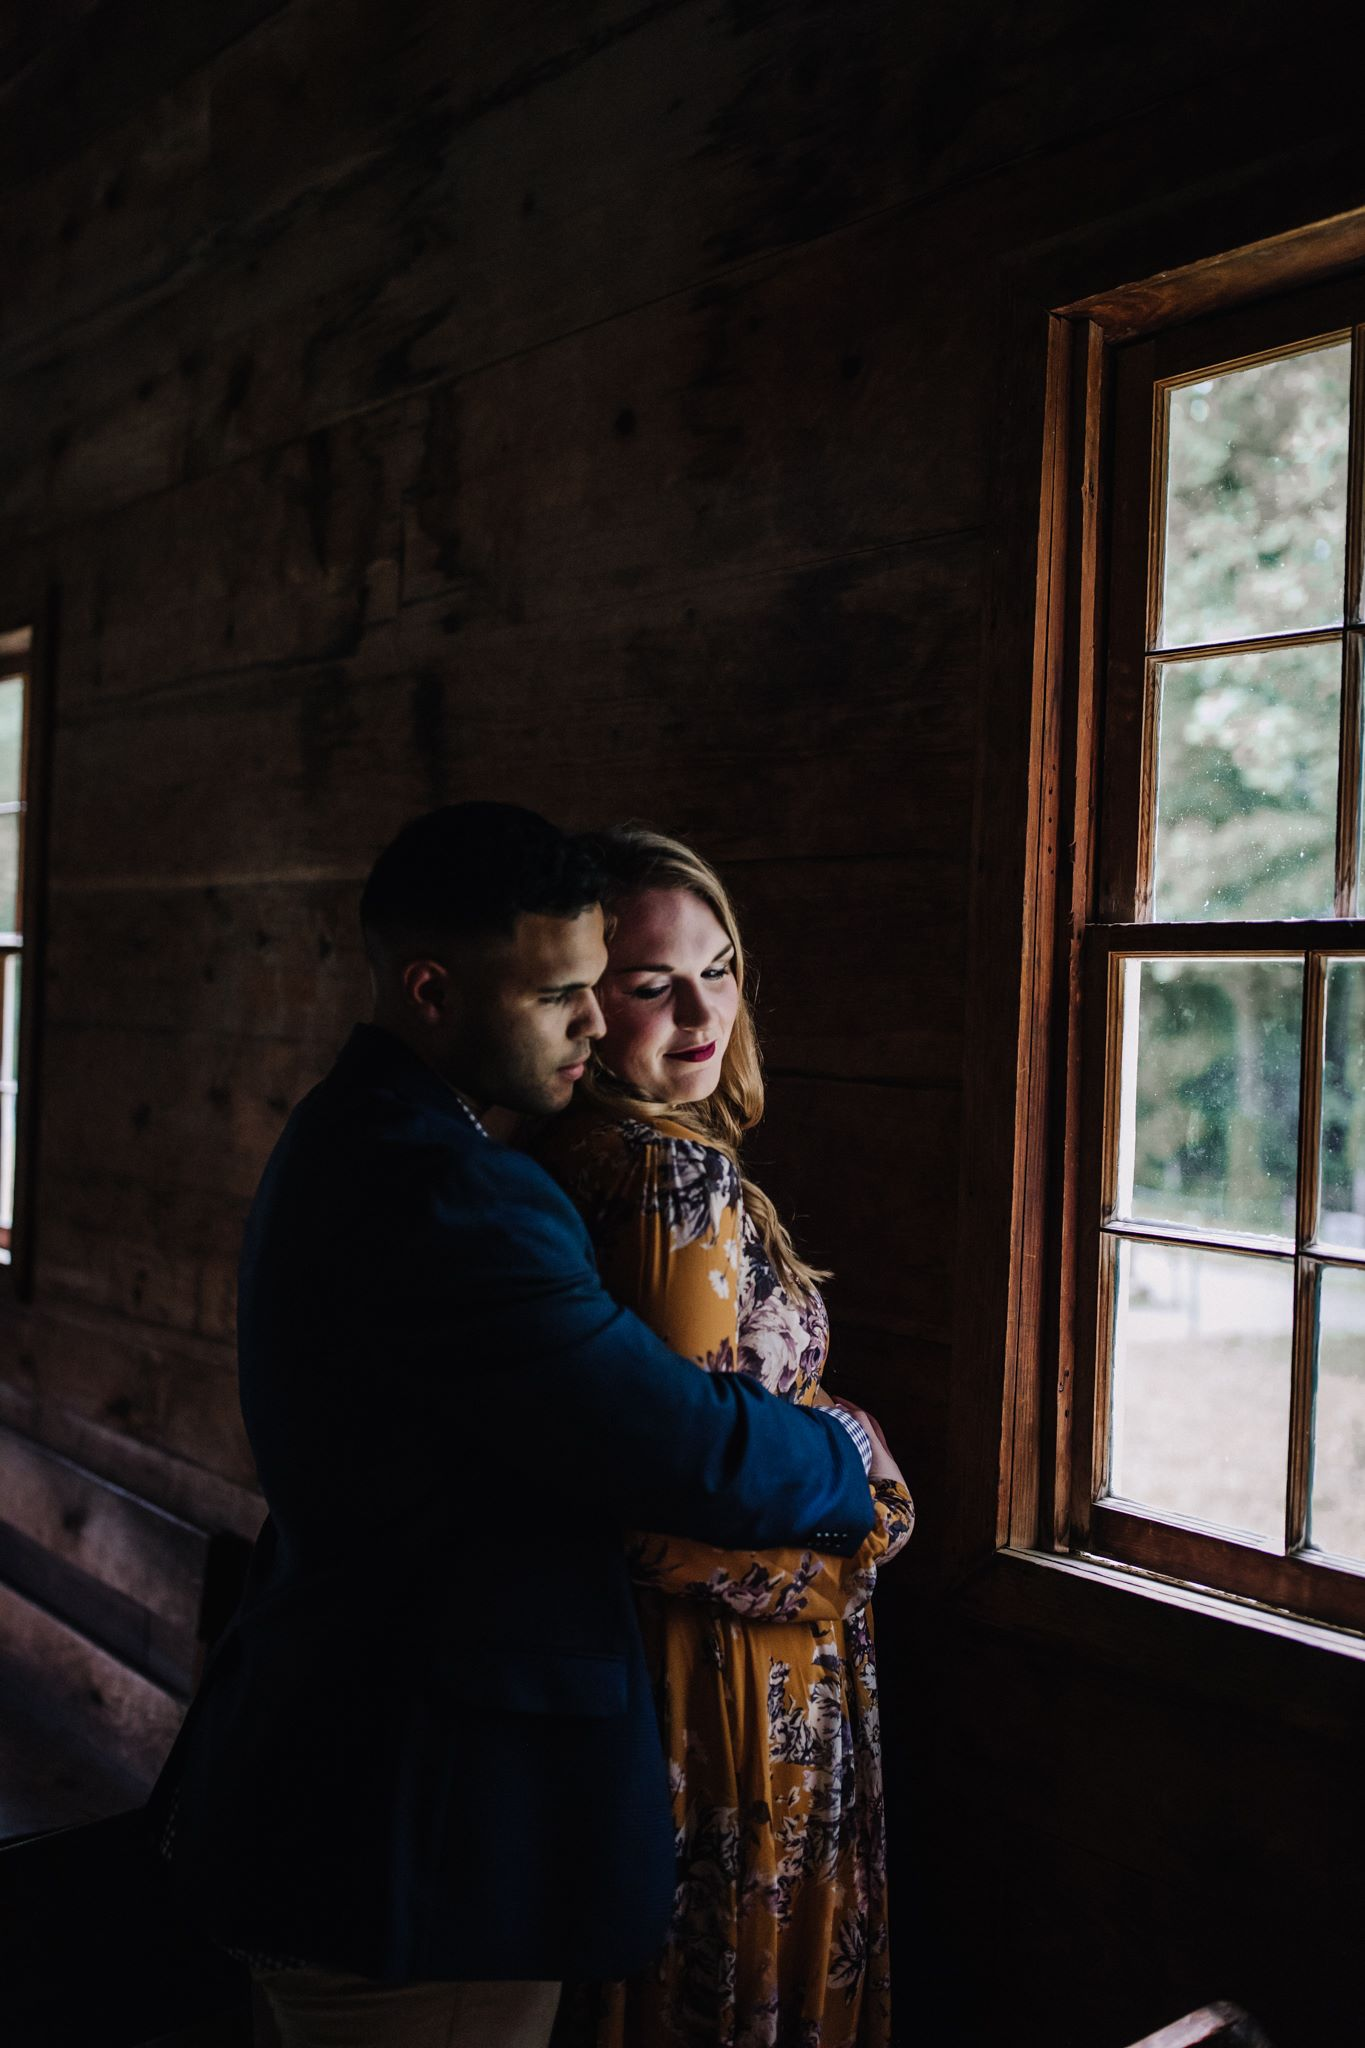 billie-shaye style photography - www.billieshayestyle.com - smokey mountain cades cove summer rain engagement session - gatlinburg tennessee-26.jpg